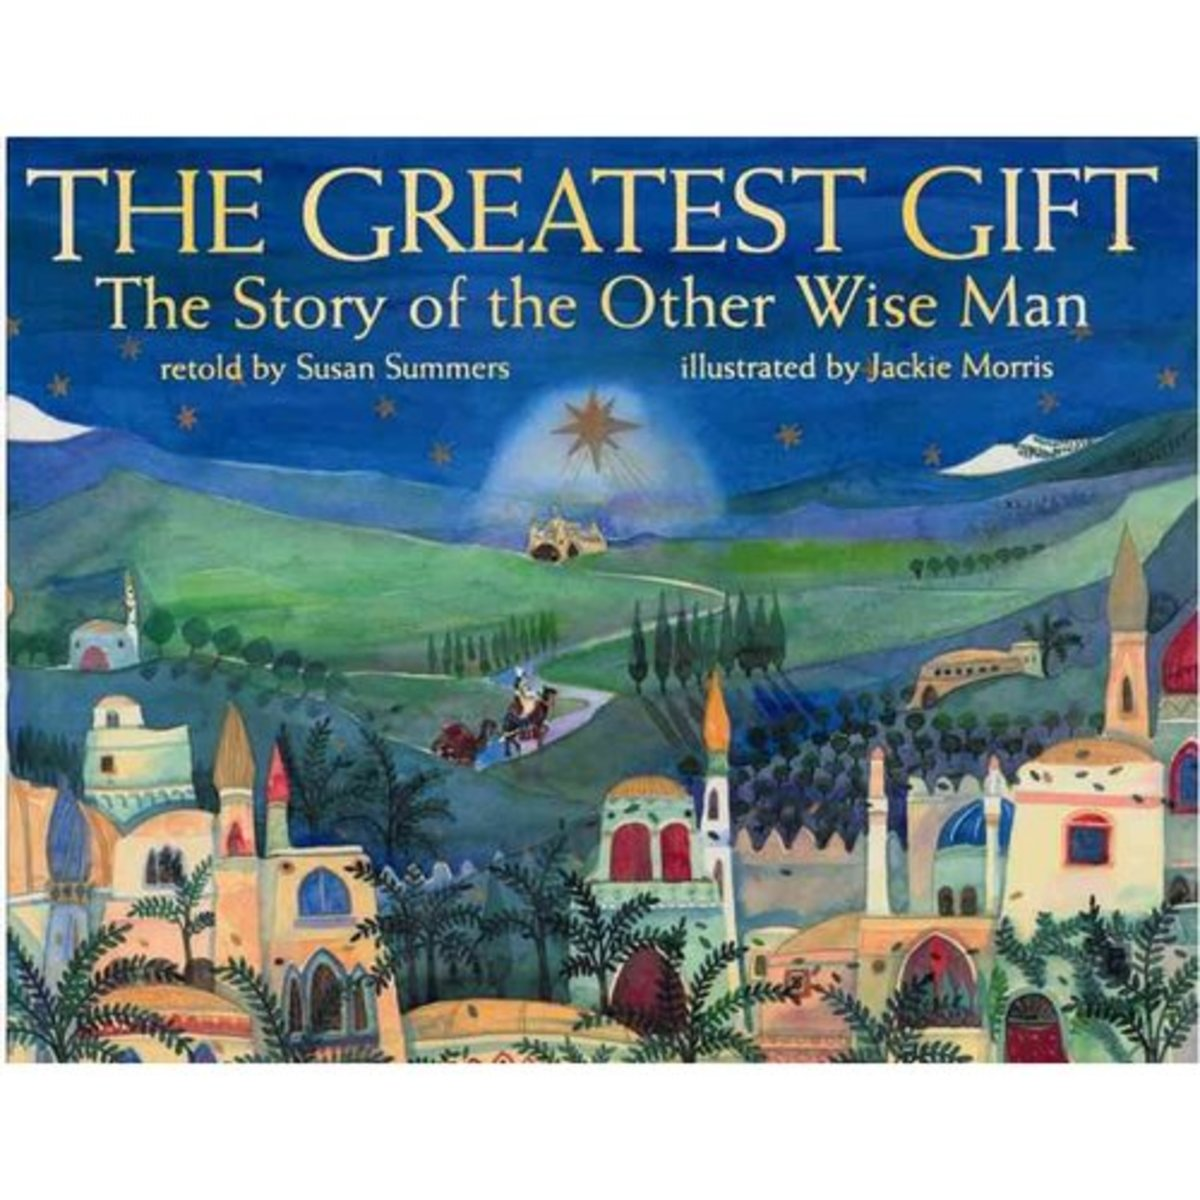 The Greatest Gift: The Story of the Otherwise Man was originally published under the title The Fourth Wise Man. This artistically rendered picture book is an adaptation of the well known book, the Story of the Other Wise Man by Henry Van Dyke.